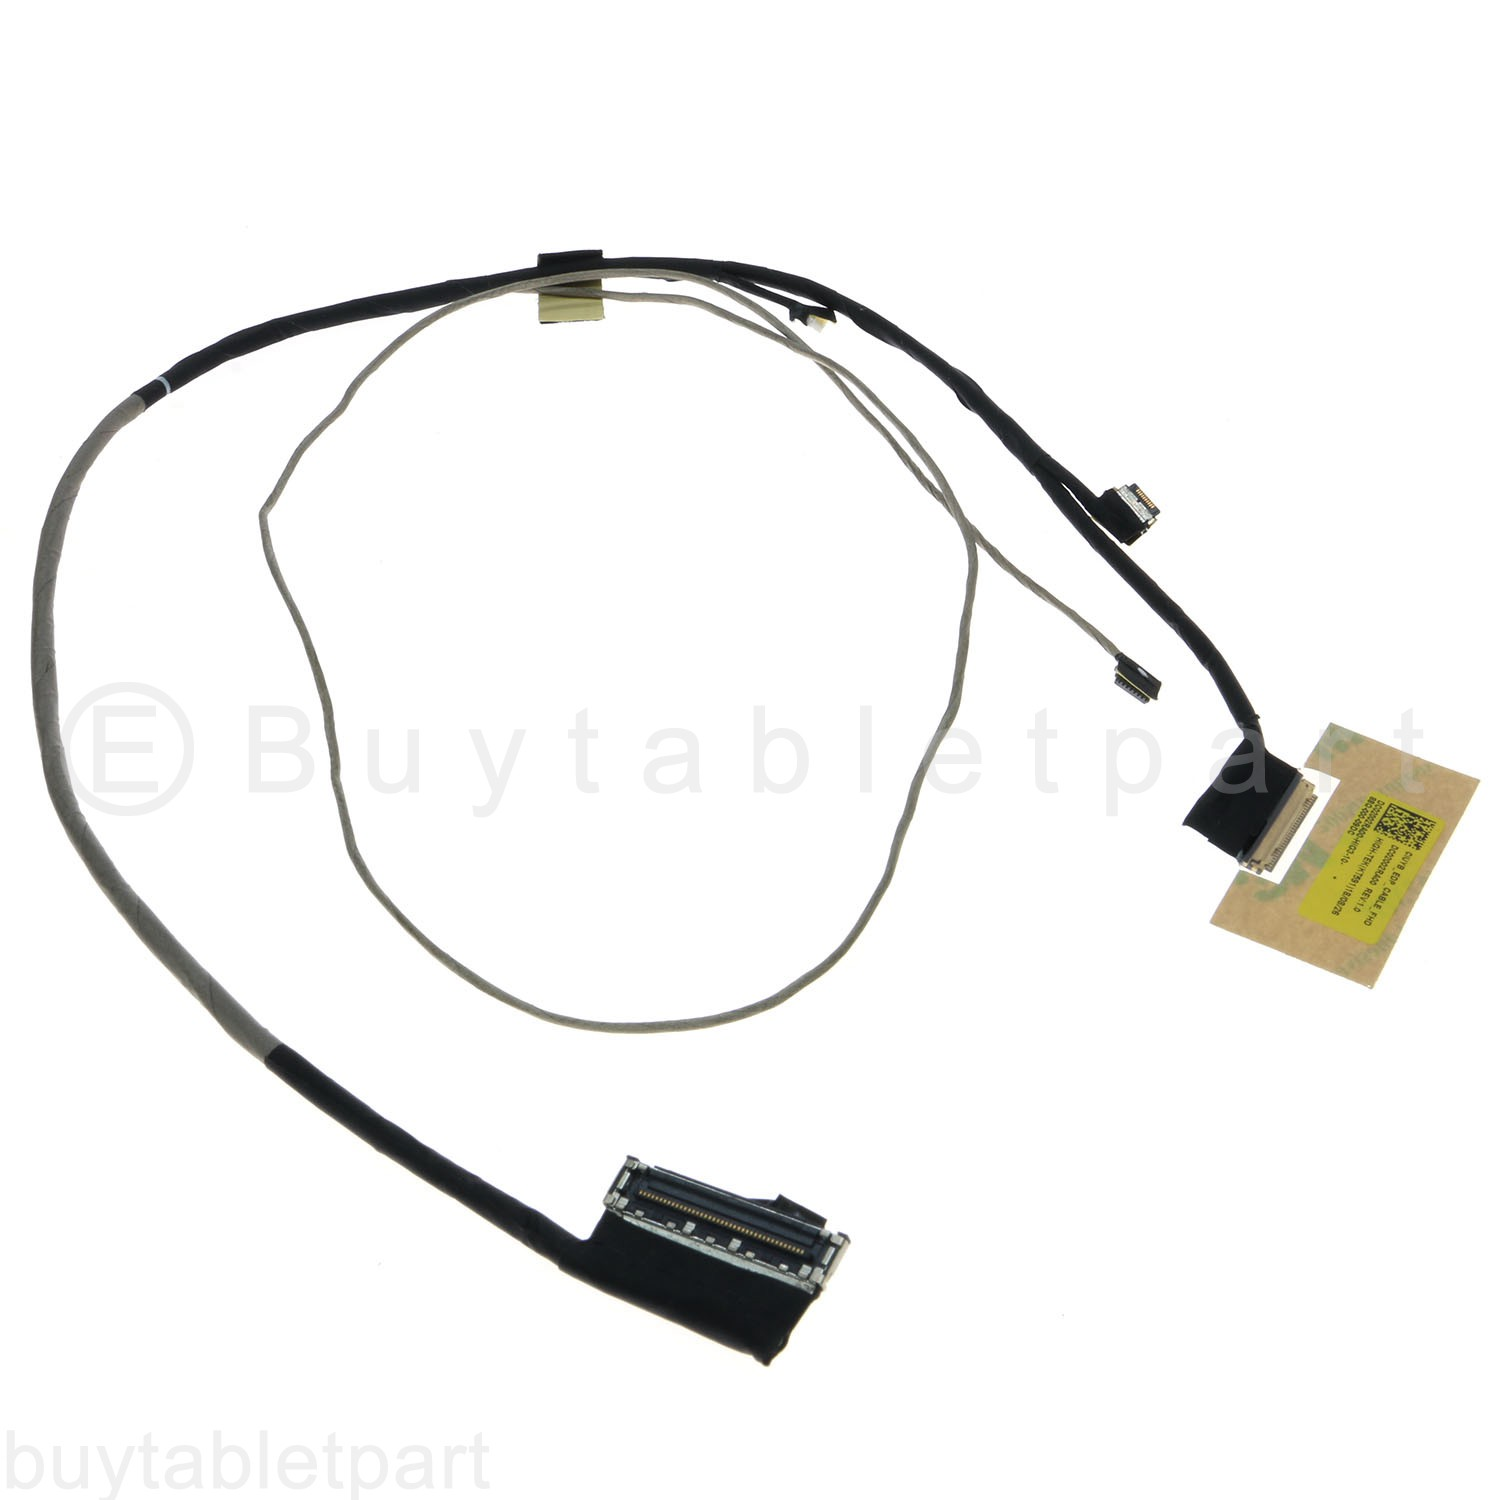 Lenovo Flex 4 1570 /& Flex 4 1580 LCD LED Screen Cable with Part No DC02002D100